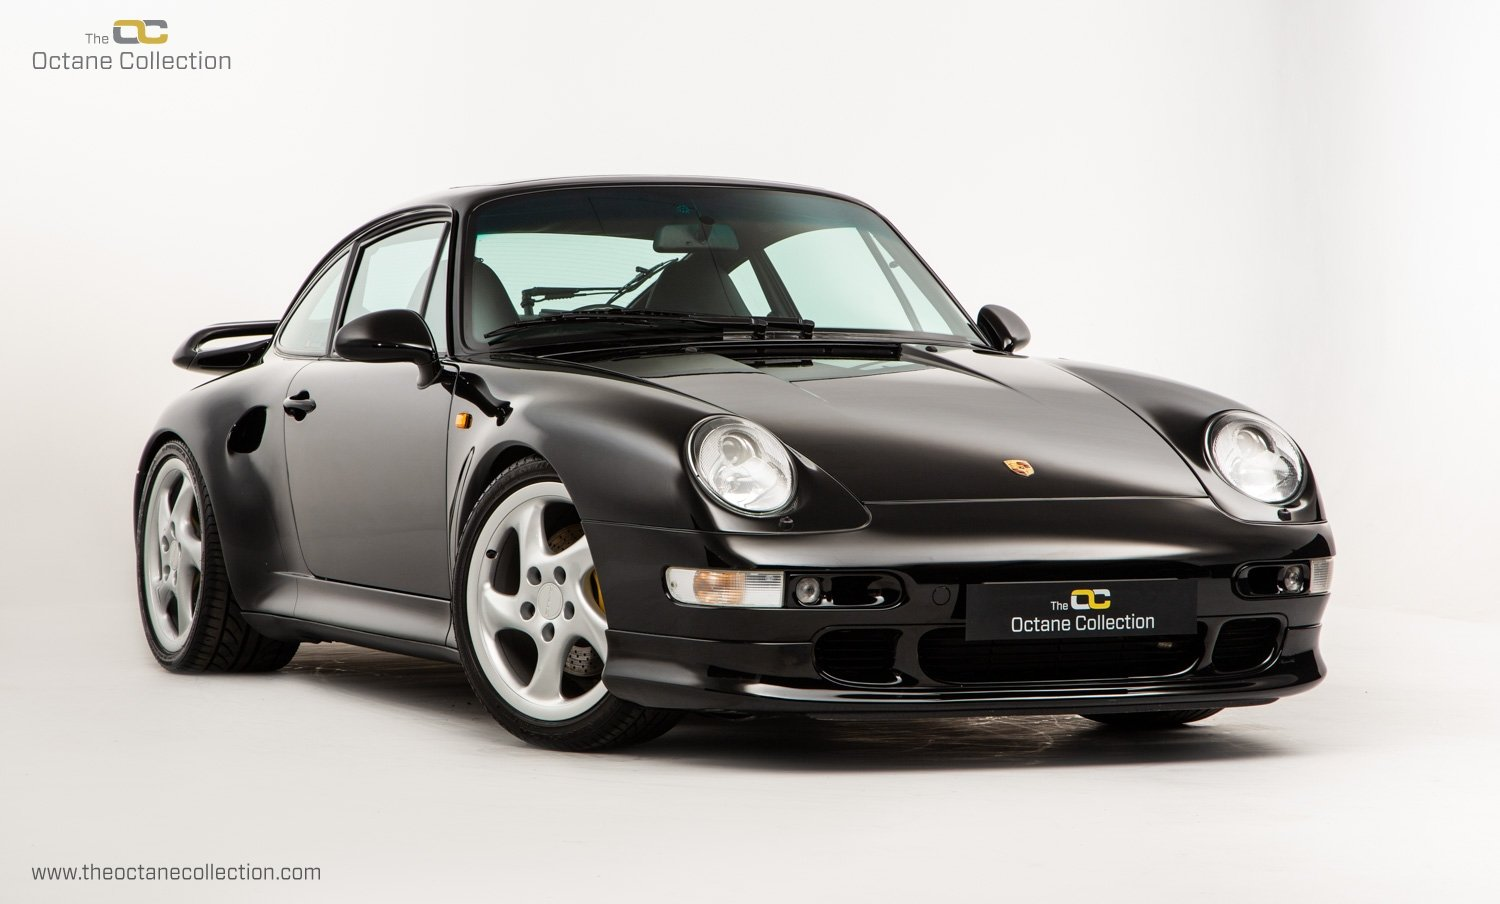 1998 PORSCHE 993 TURBO S // 1 OF 23 RHD CARS // UK C16 // FPSH For Sale (picture 7 of 24)